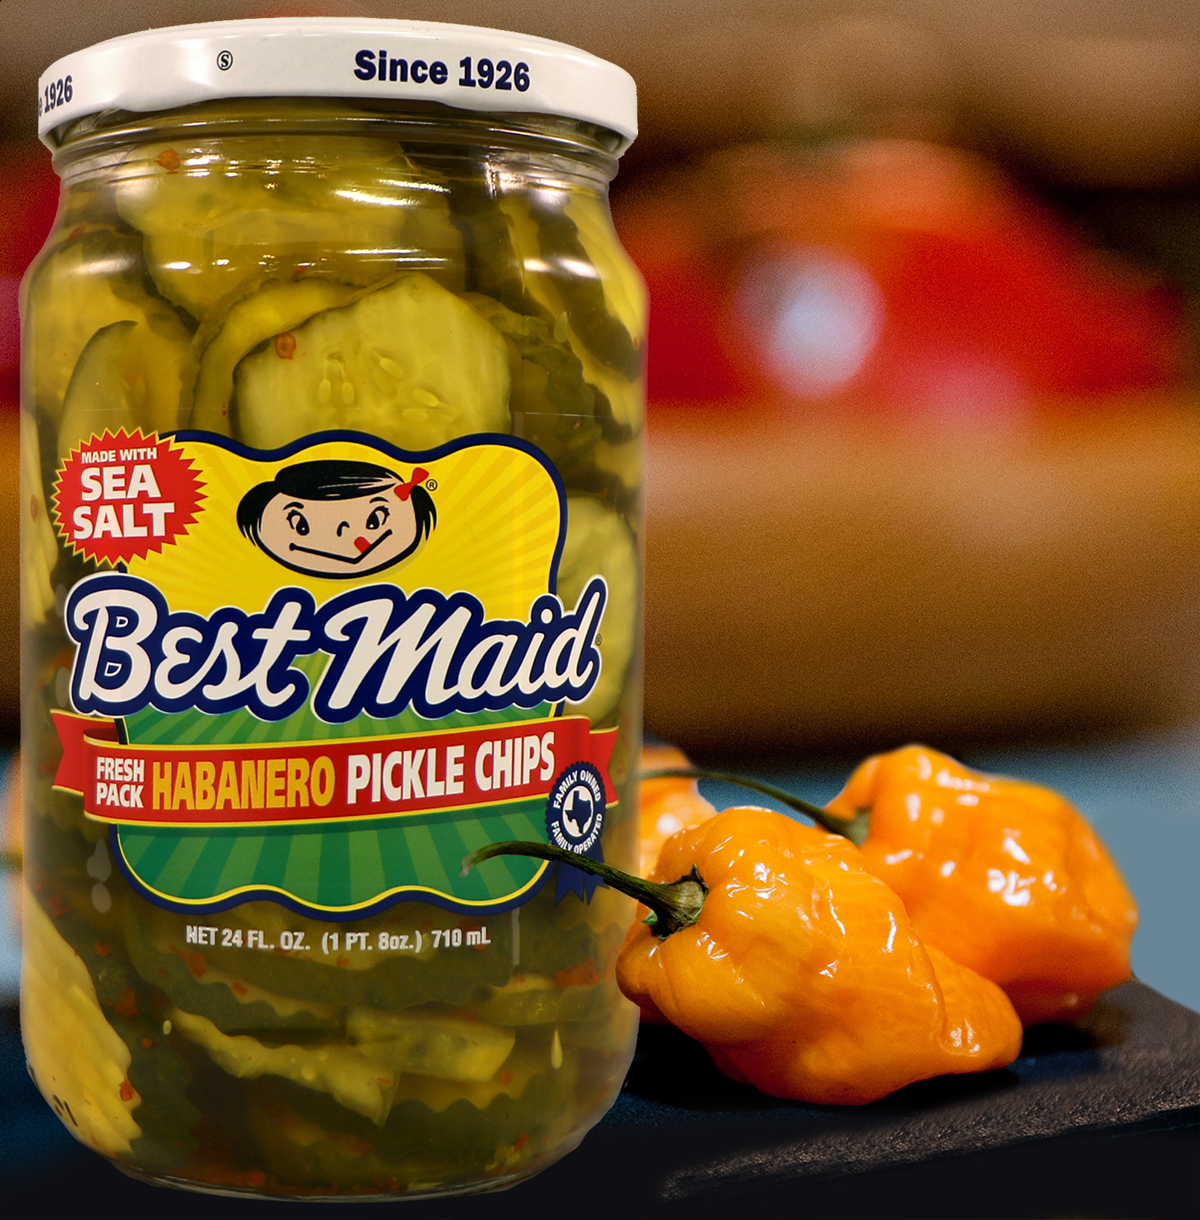 Best Maid Habanero Pickle Chips